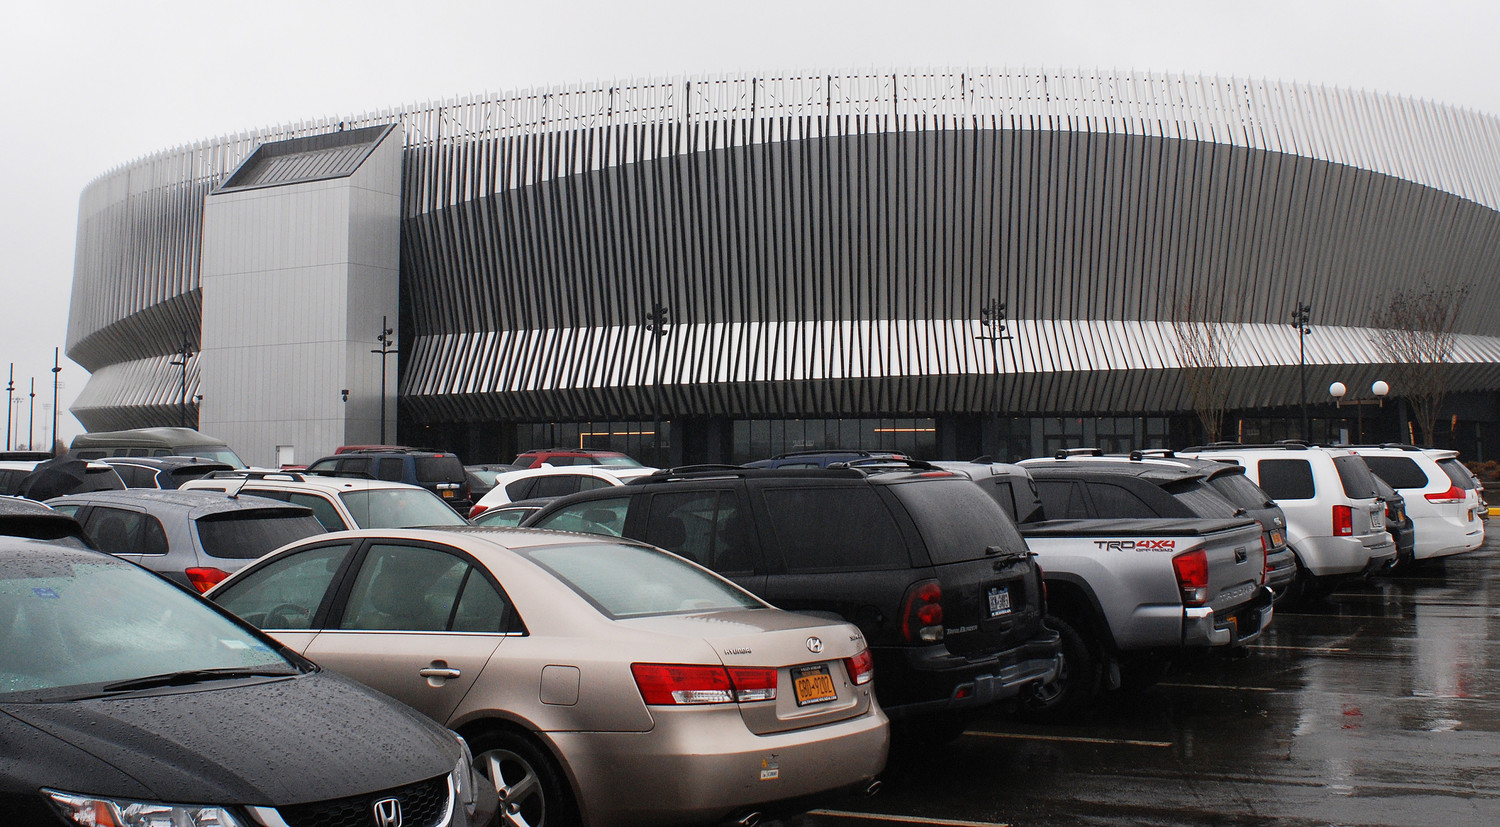 Amid Nassau Coliseum's temporary closure, Nassau County is demanding that Onexim Sports and Entertainment, the company that operates Nassau Coliseum, pay $2 million in overdue rent.